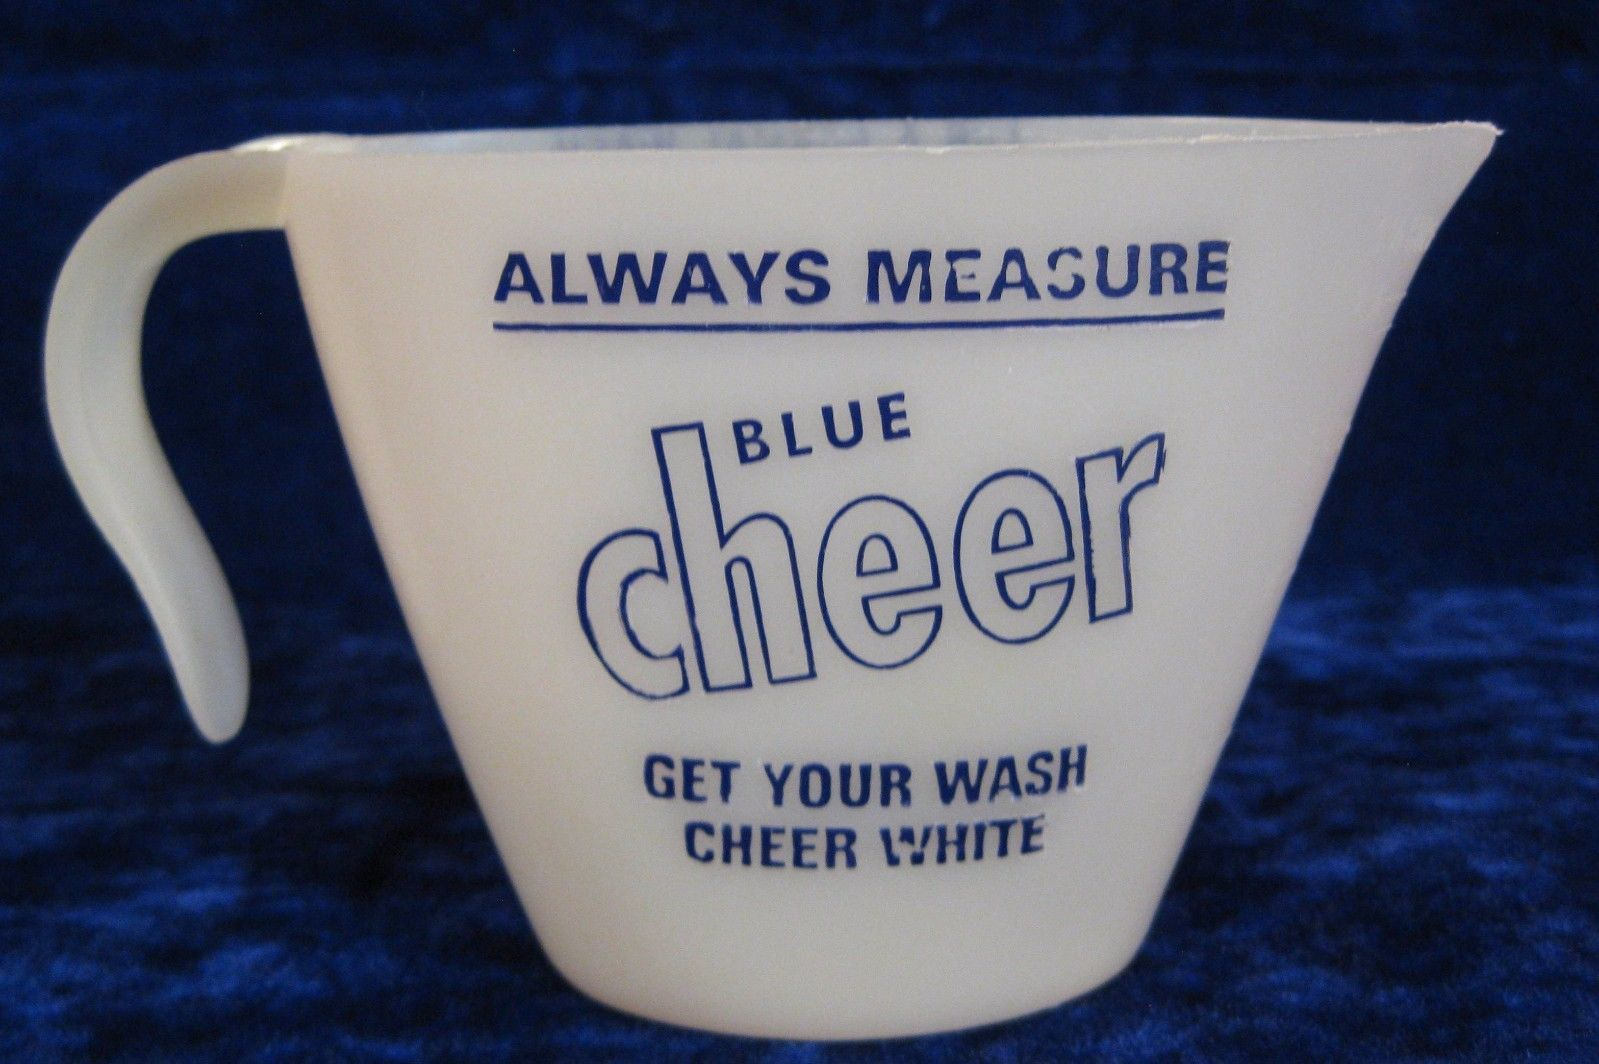 Vintage Blue Cheer Detergent Laundry Cup